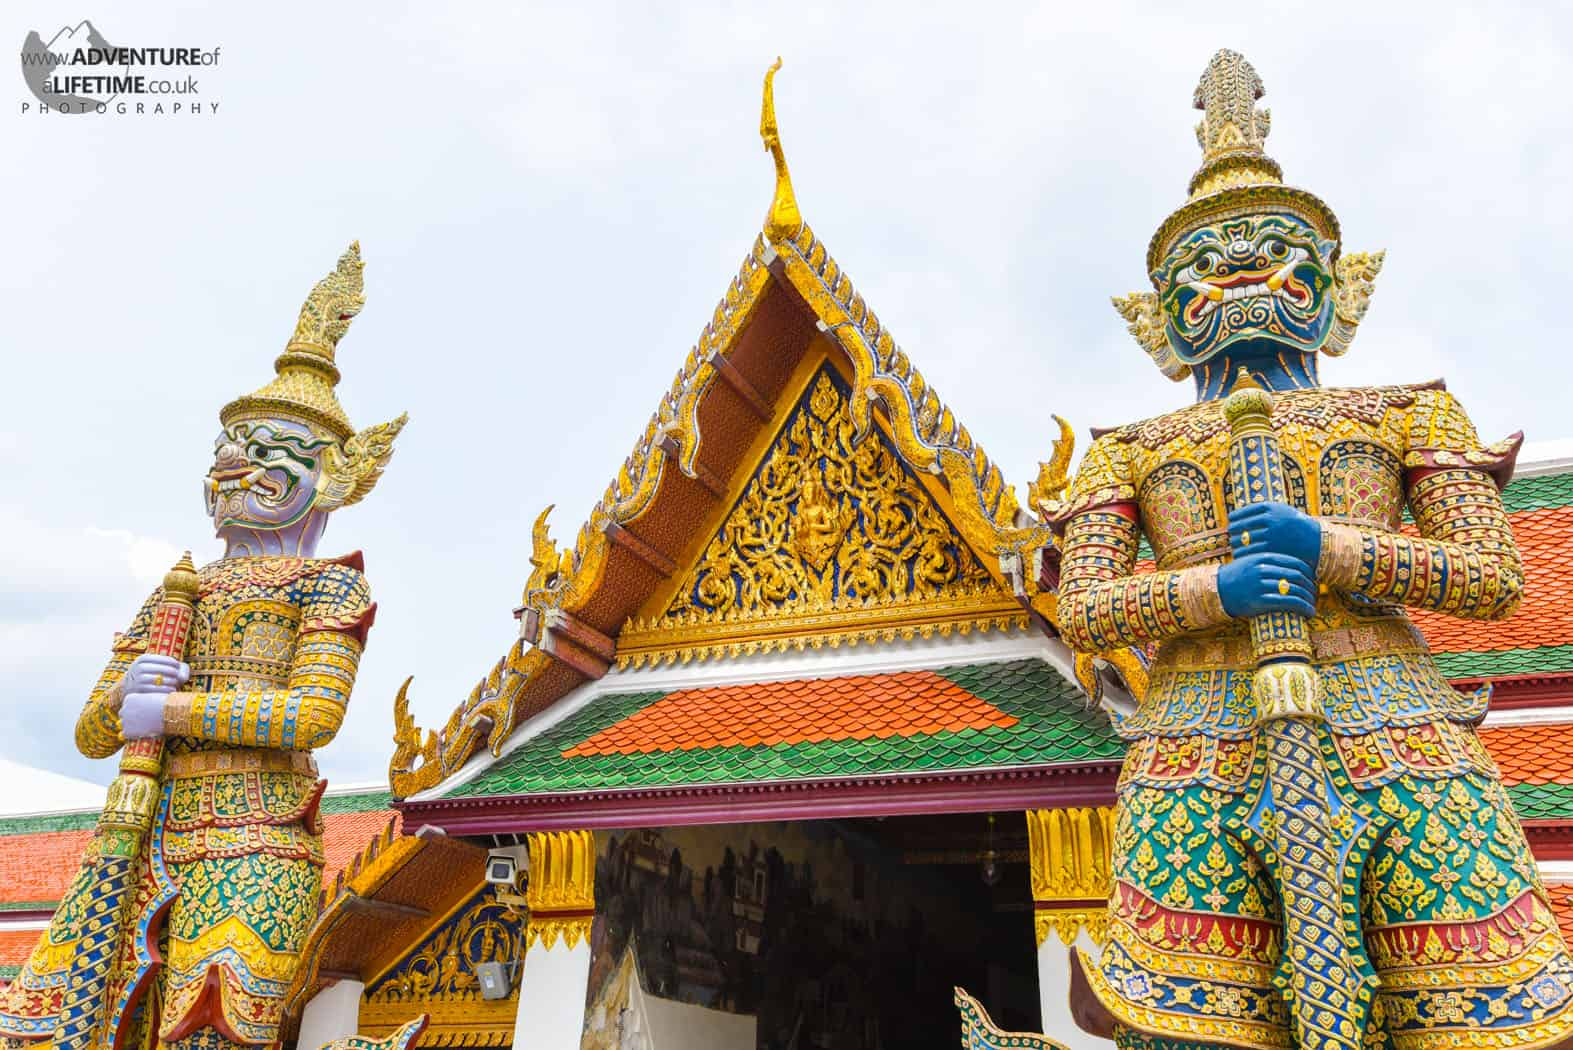 The Grand Palace Gatekeepers